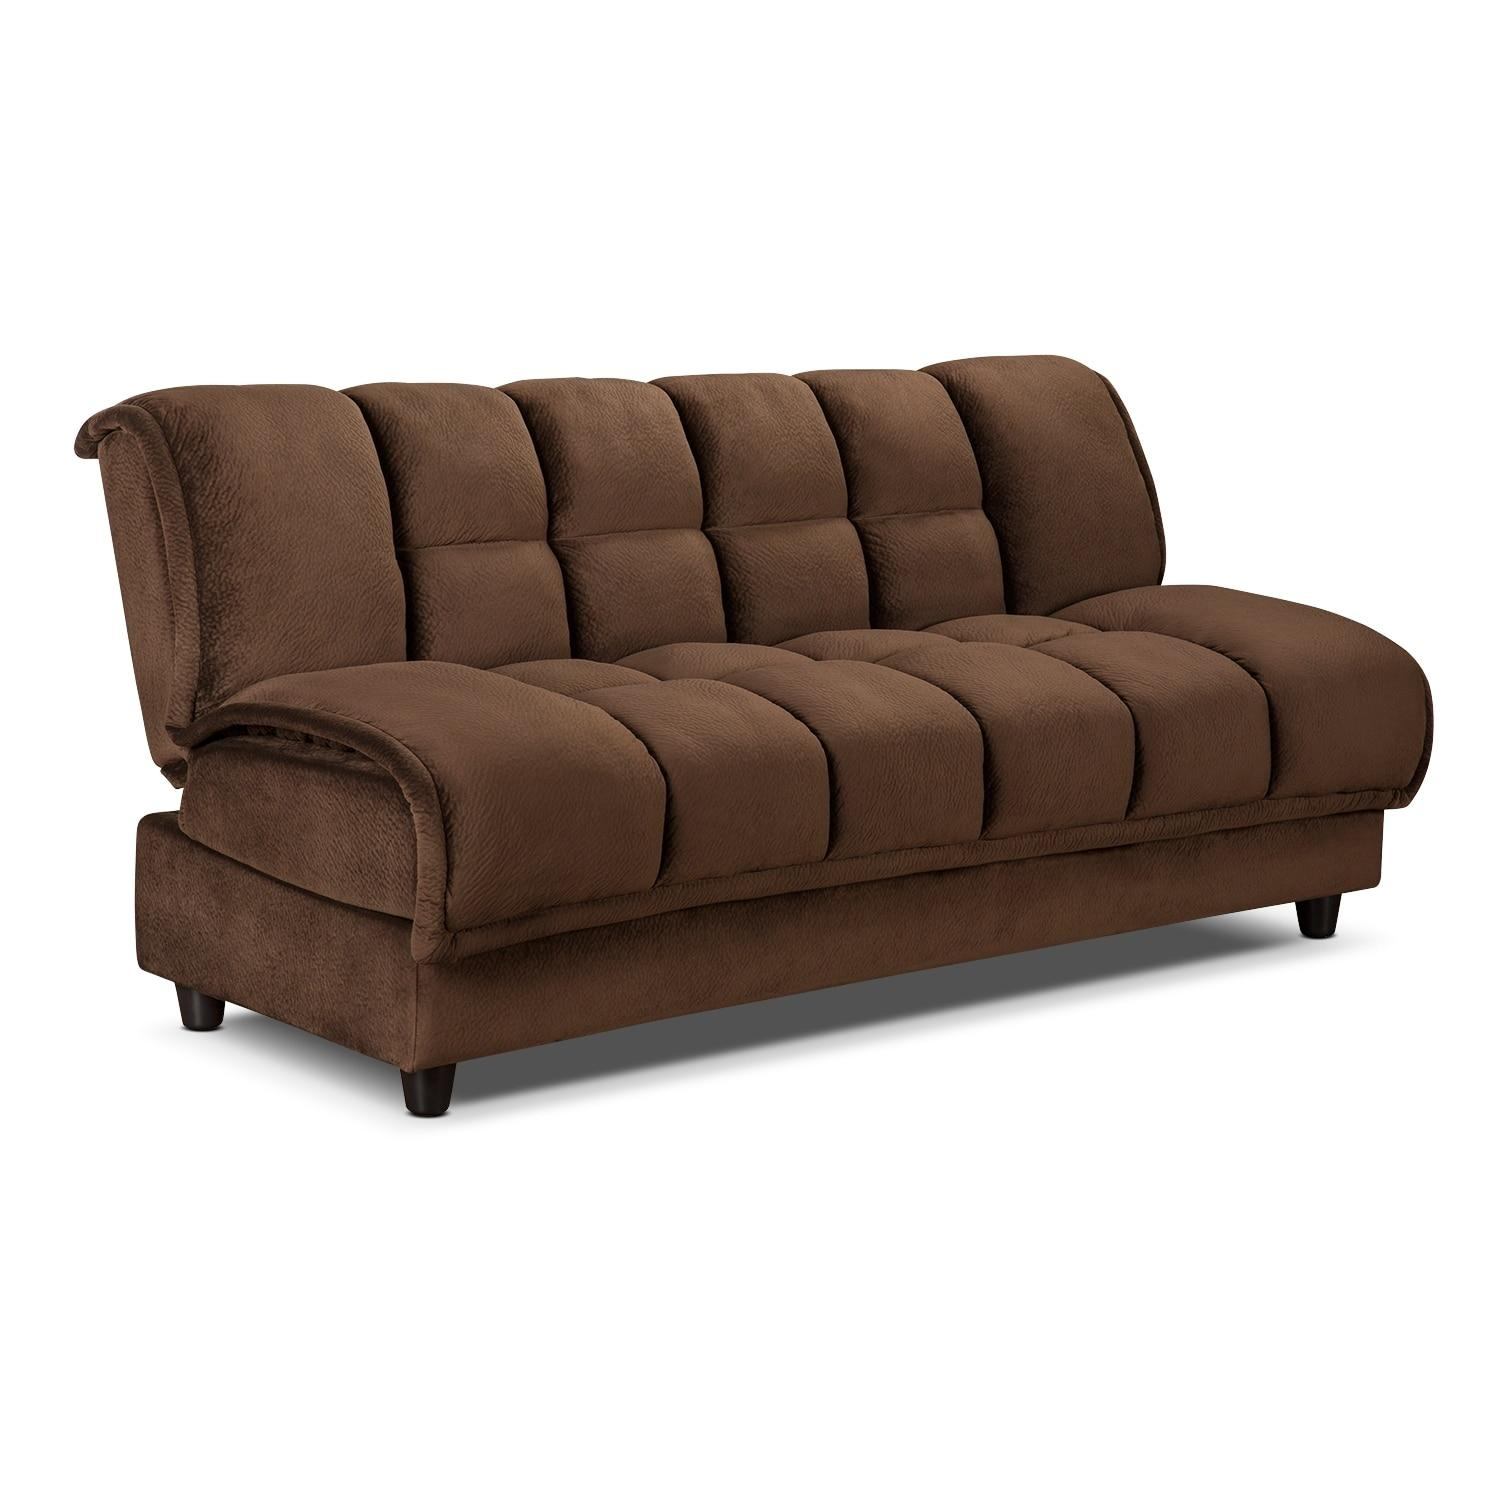 Sleeper Sofas | Value City Furniture | Value City Furniture In Sofa Bed Sleepers (Image 13 of 20)